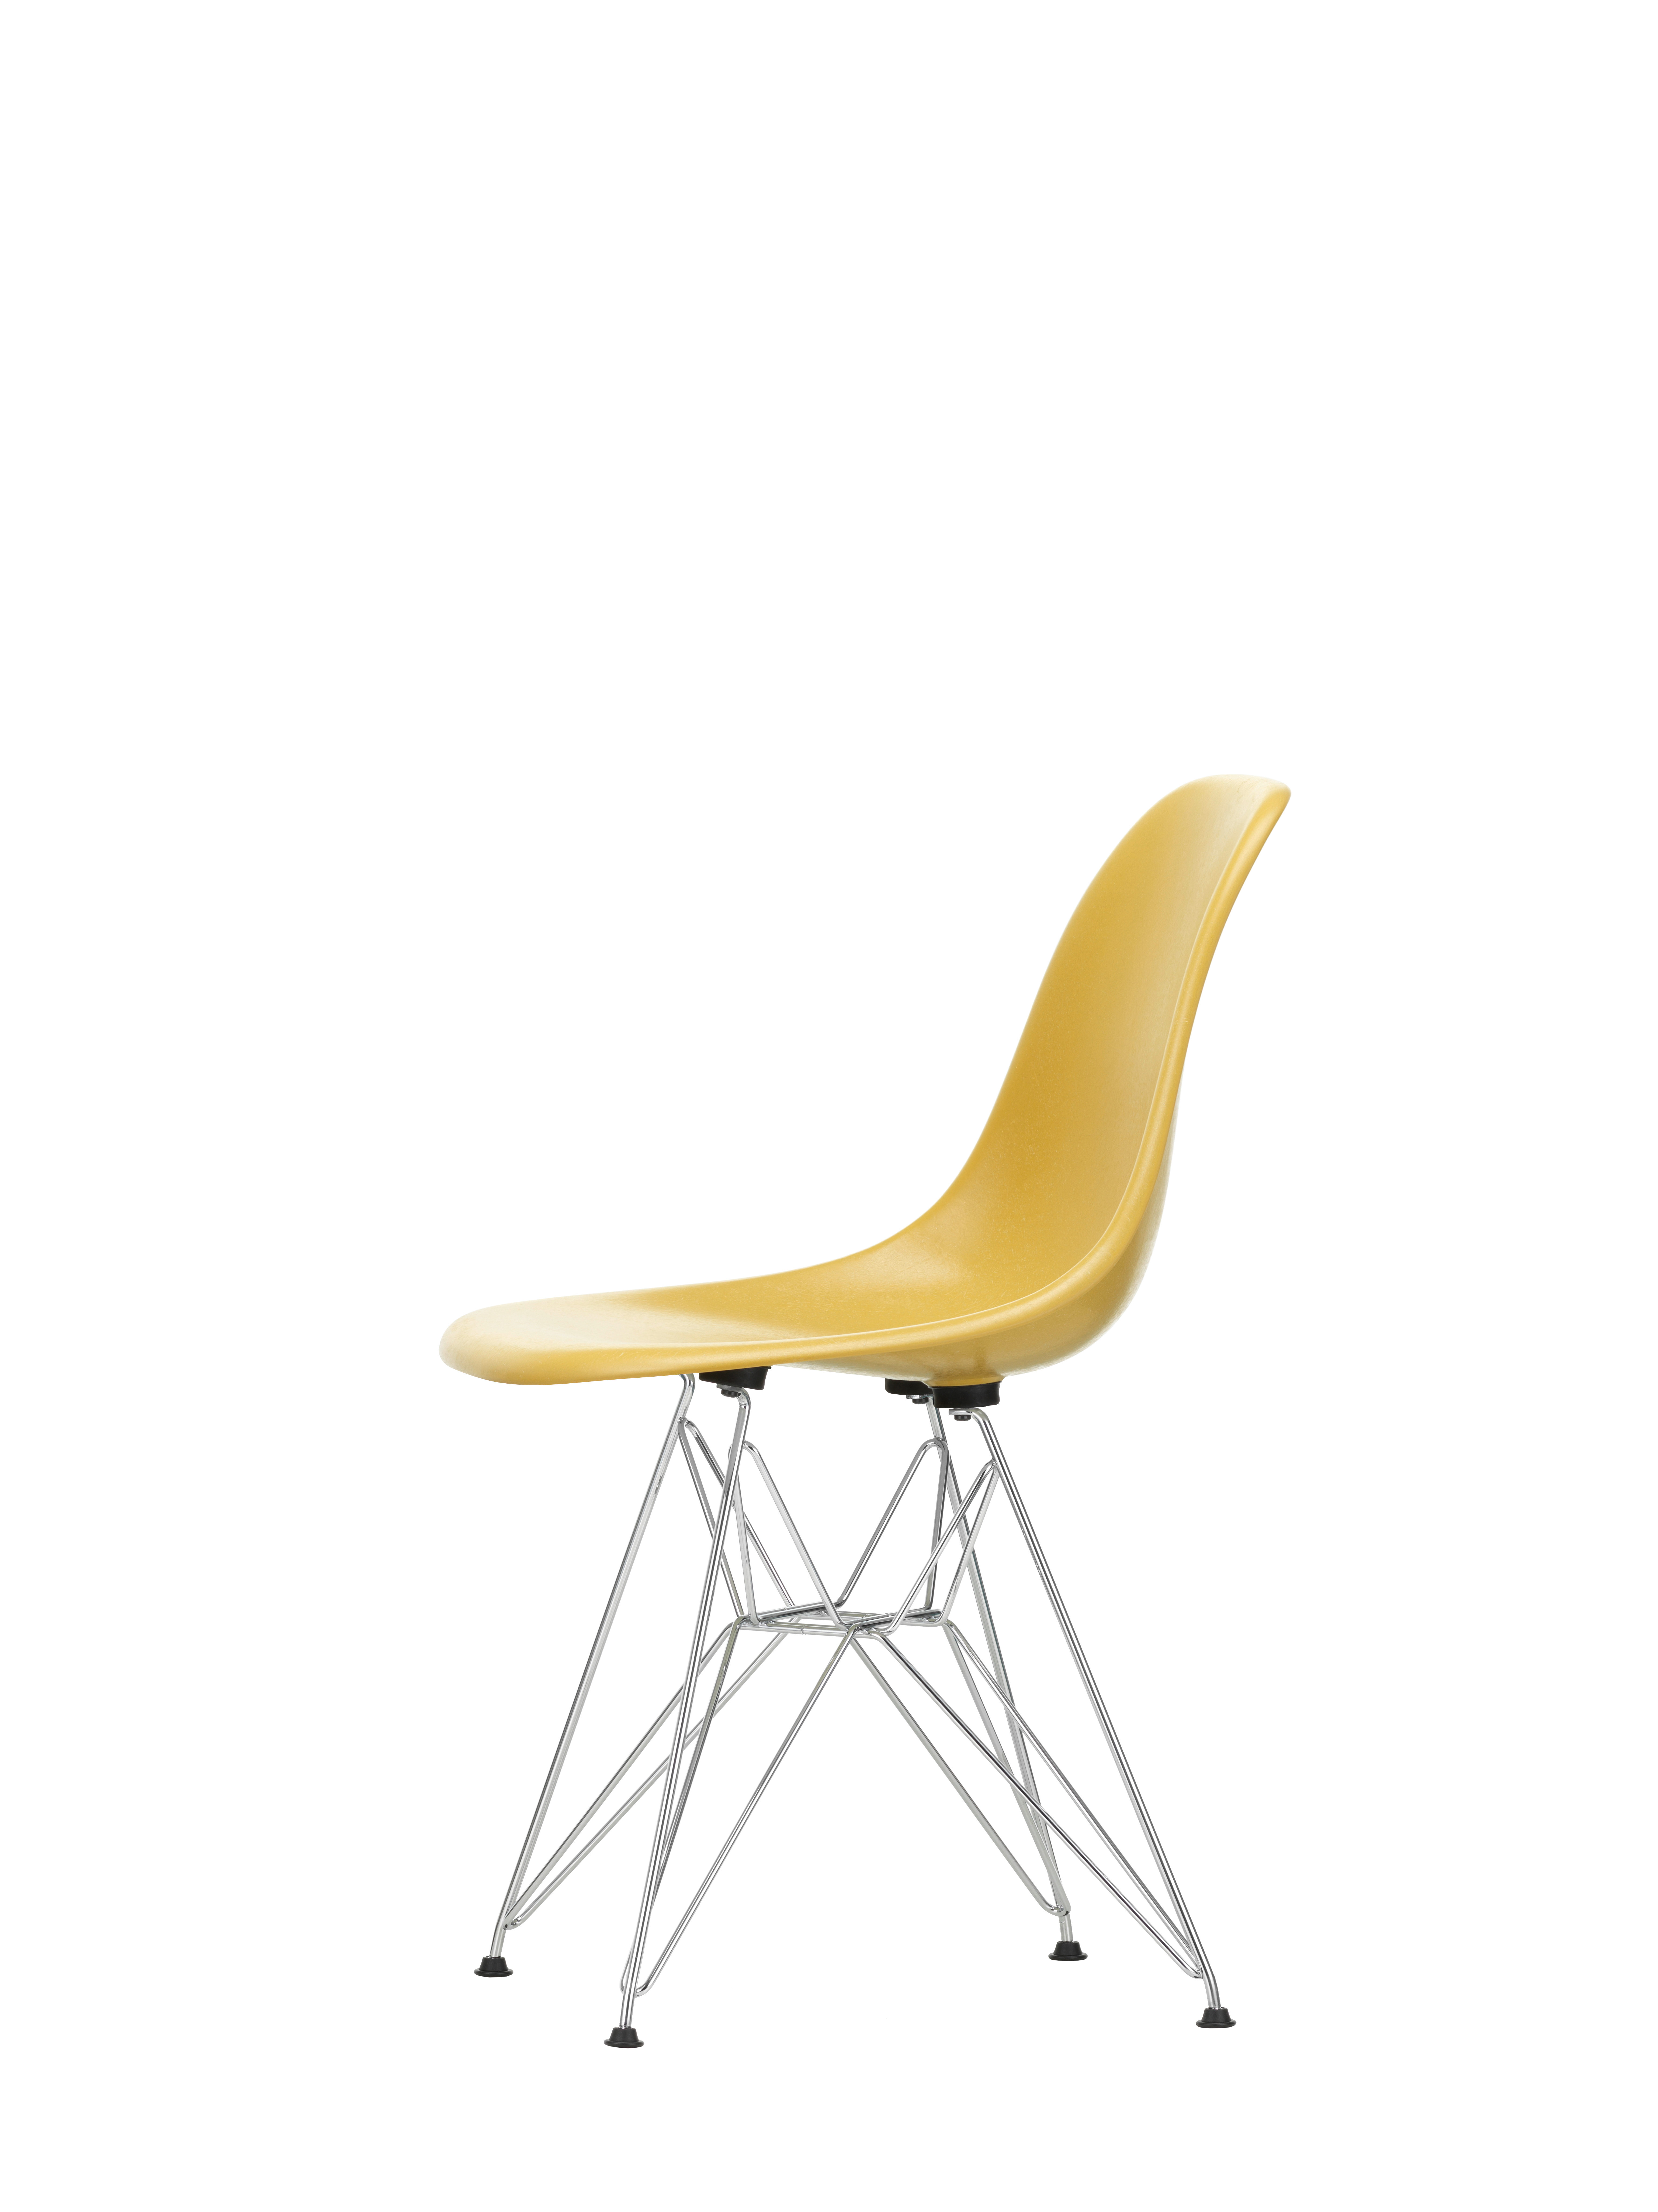 Vitra - Eames Plastic Side Chair - Eames Fiberglass Side Chair DSR